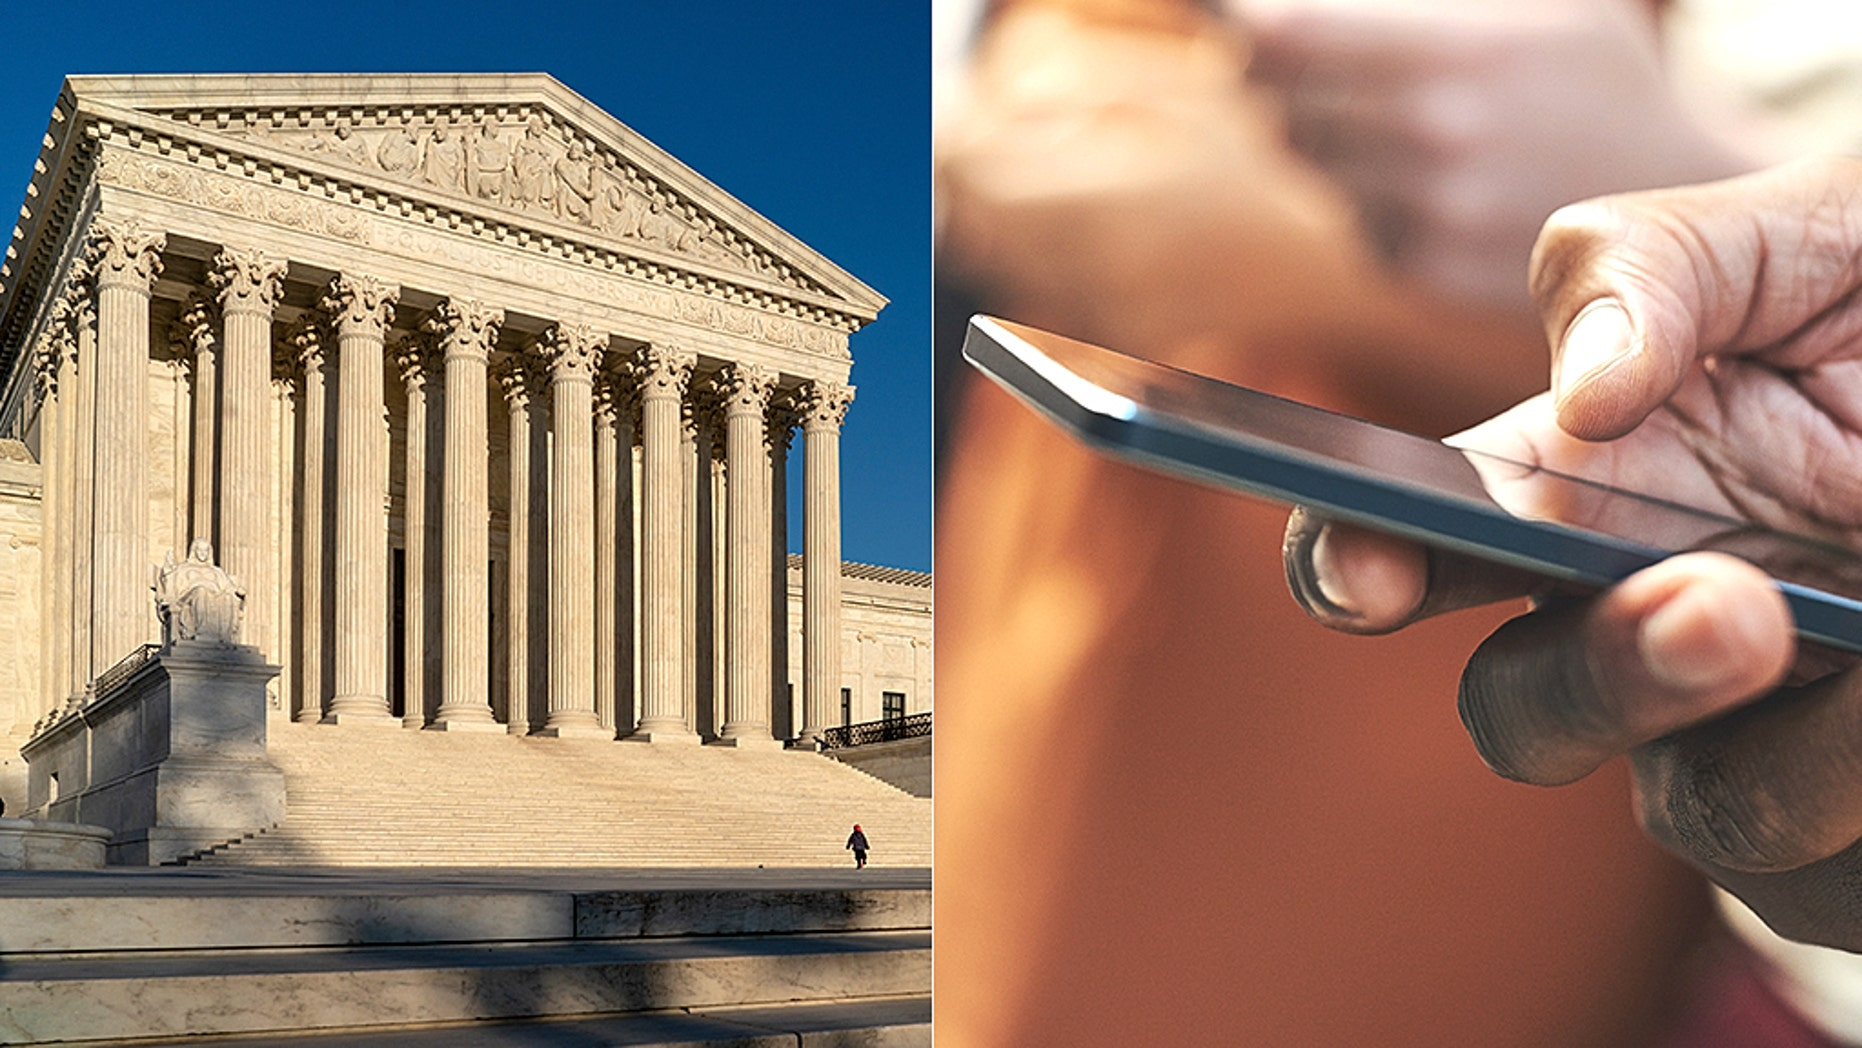 The Supreme Court sided with privacy rights of cellphone users in Big Brother case.